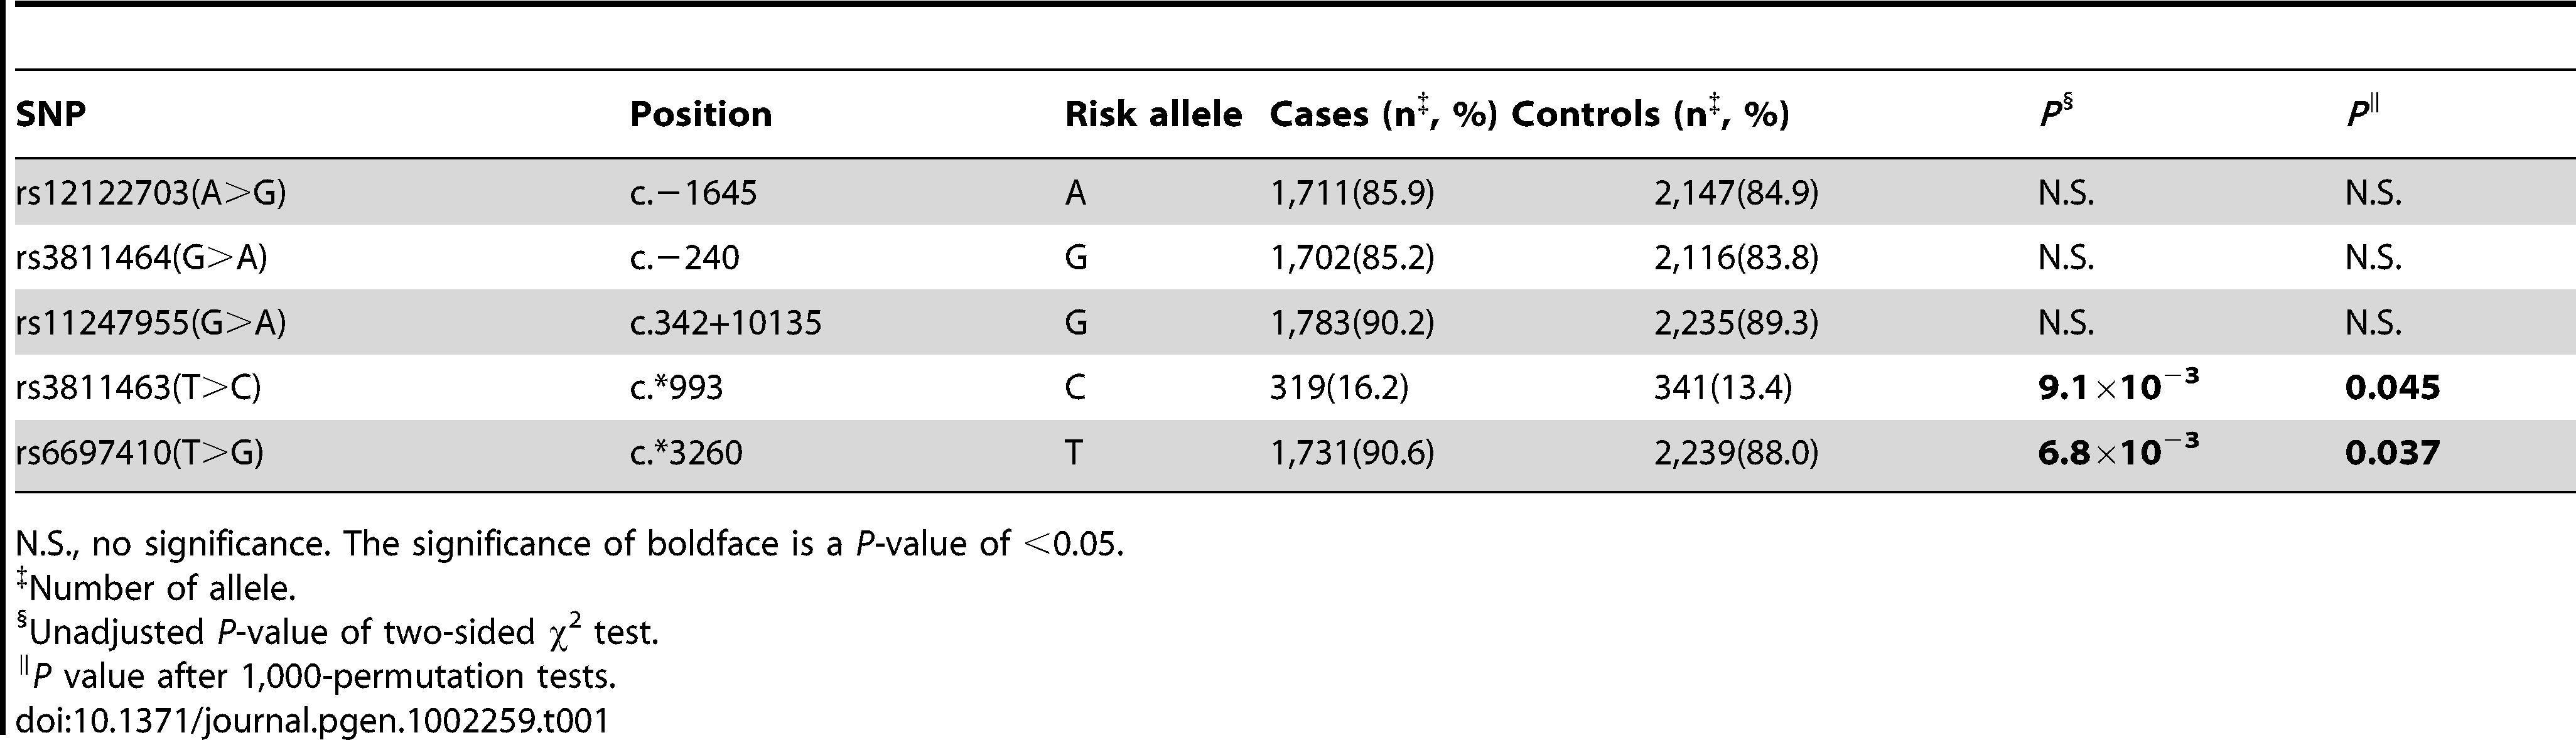 Frequency of LIN28 alleles in breast cancer patients and controls in the test set.